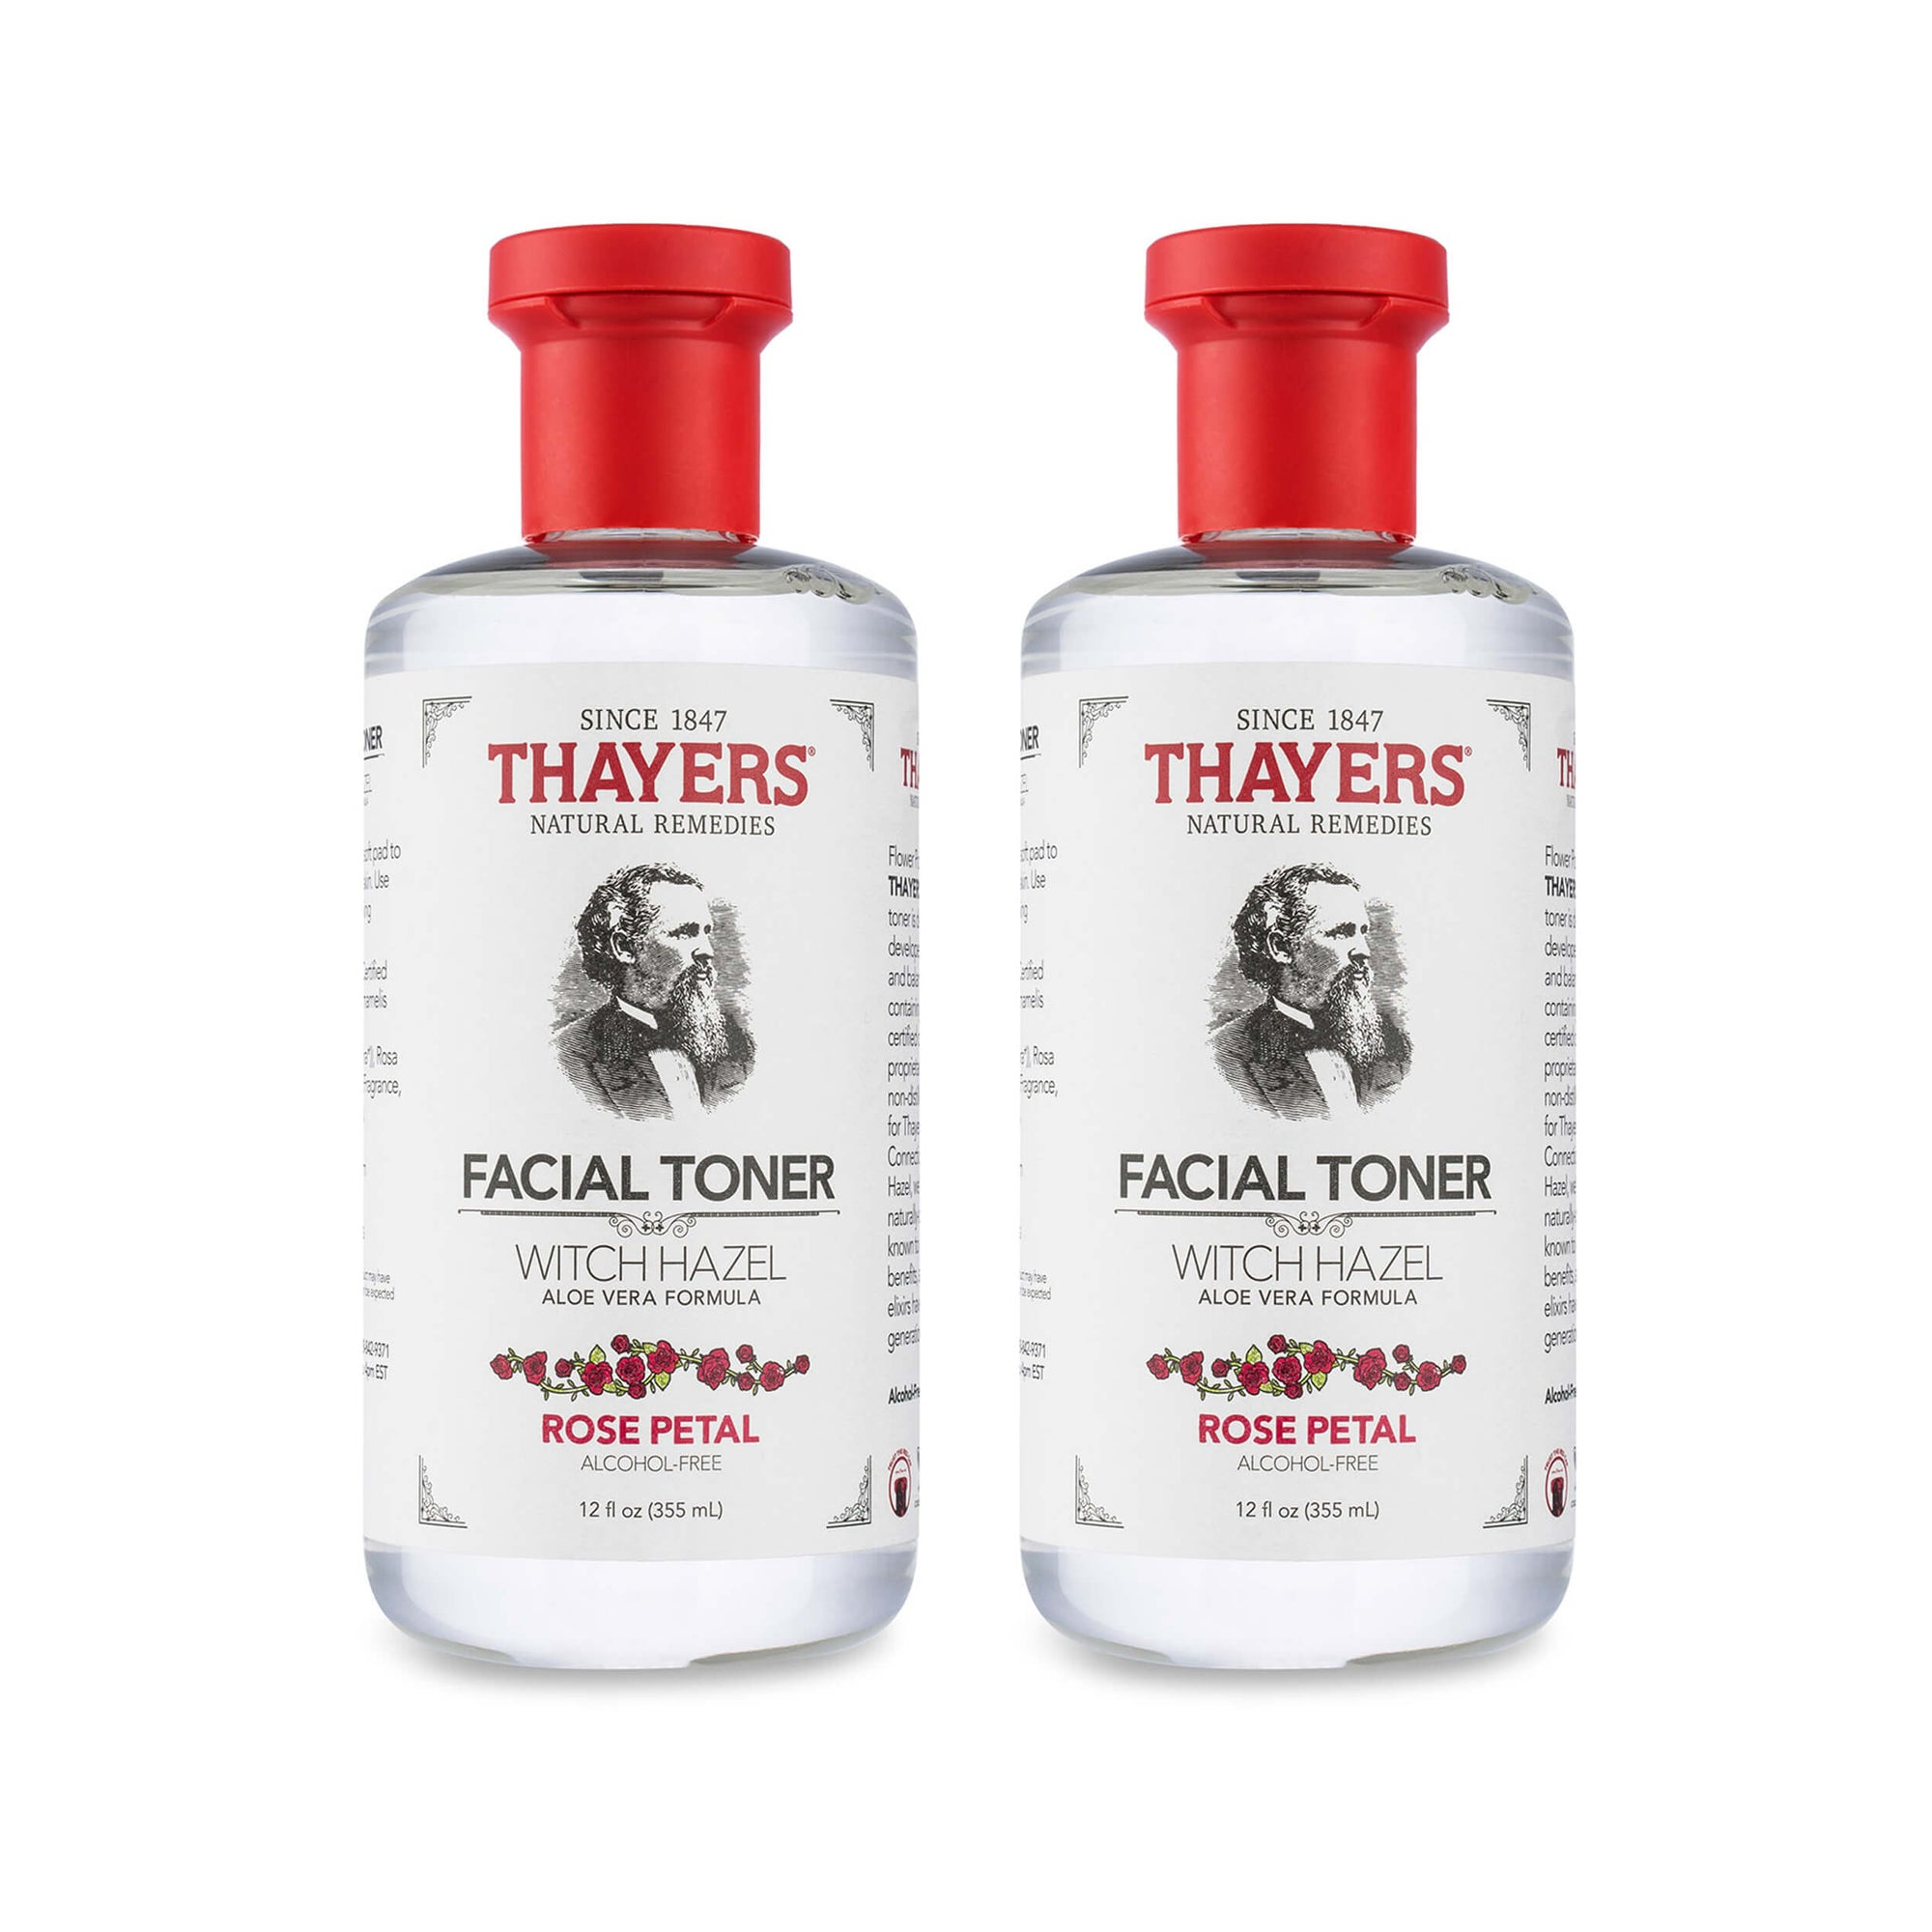 Thayers Alcohol-Free Rose Petal Witch Hazel Toner Pack of 2